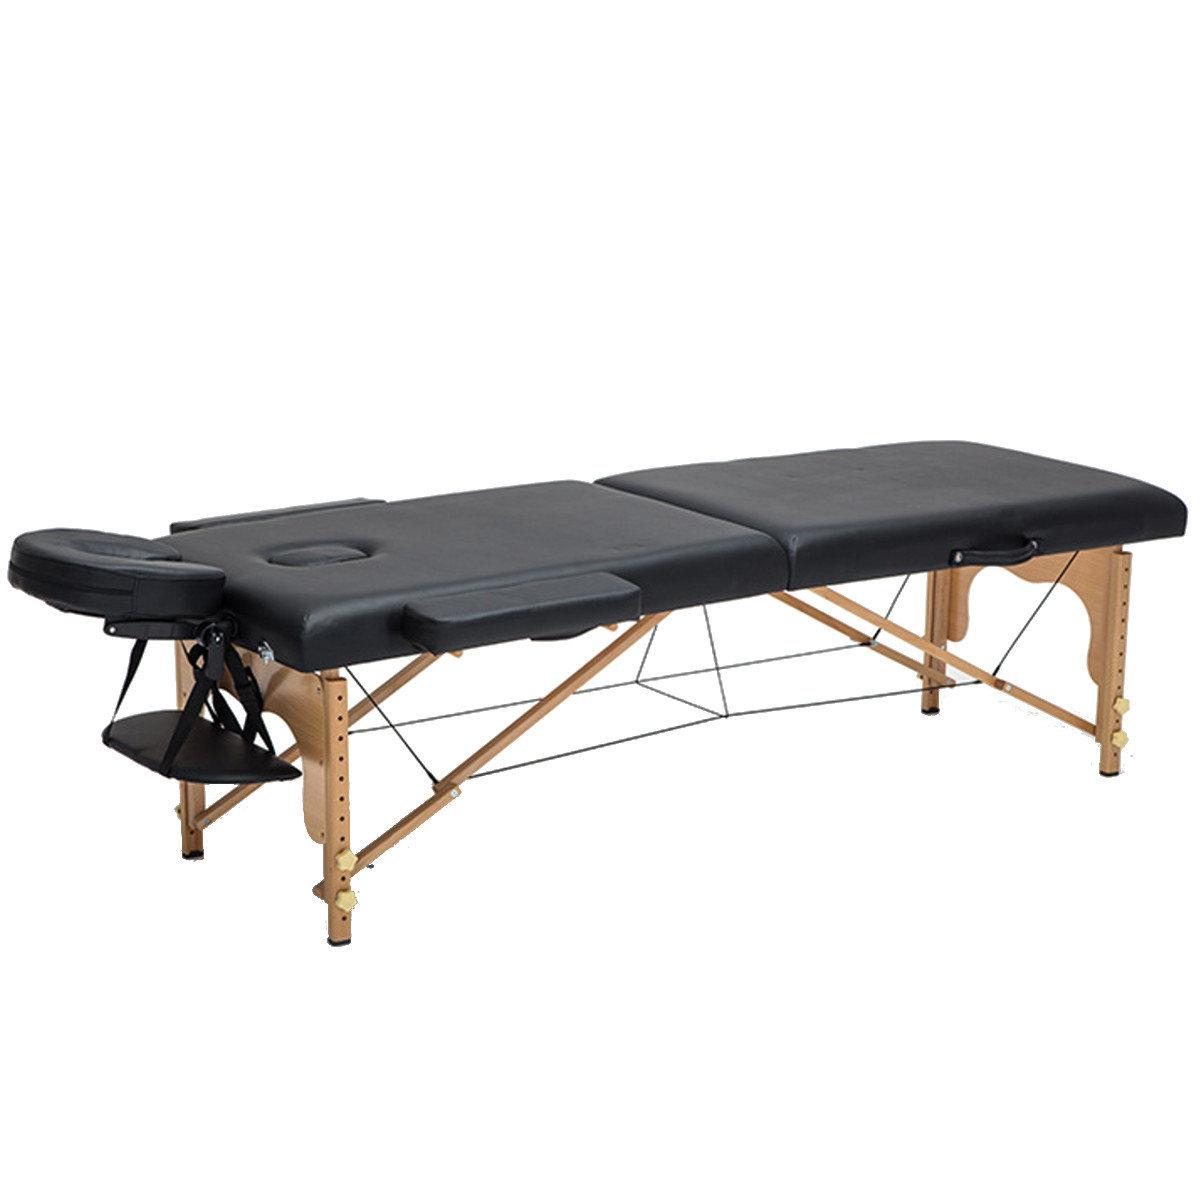 Tables de Massage portatives multifonctionnelles de station thermale avec le sac de transport meubles de Salon pliant la Table molle de Massage de beauté de lit d'éponge